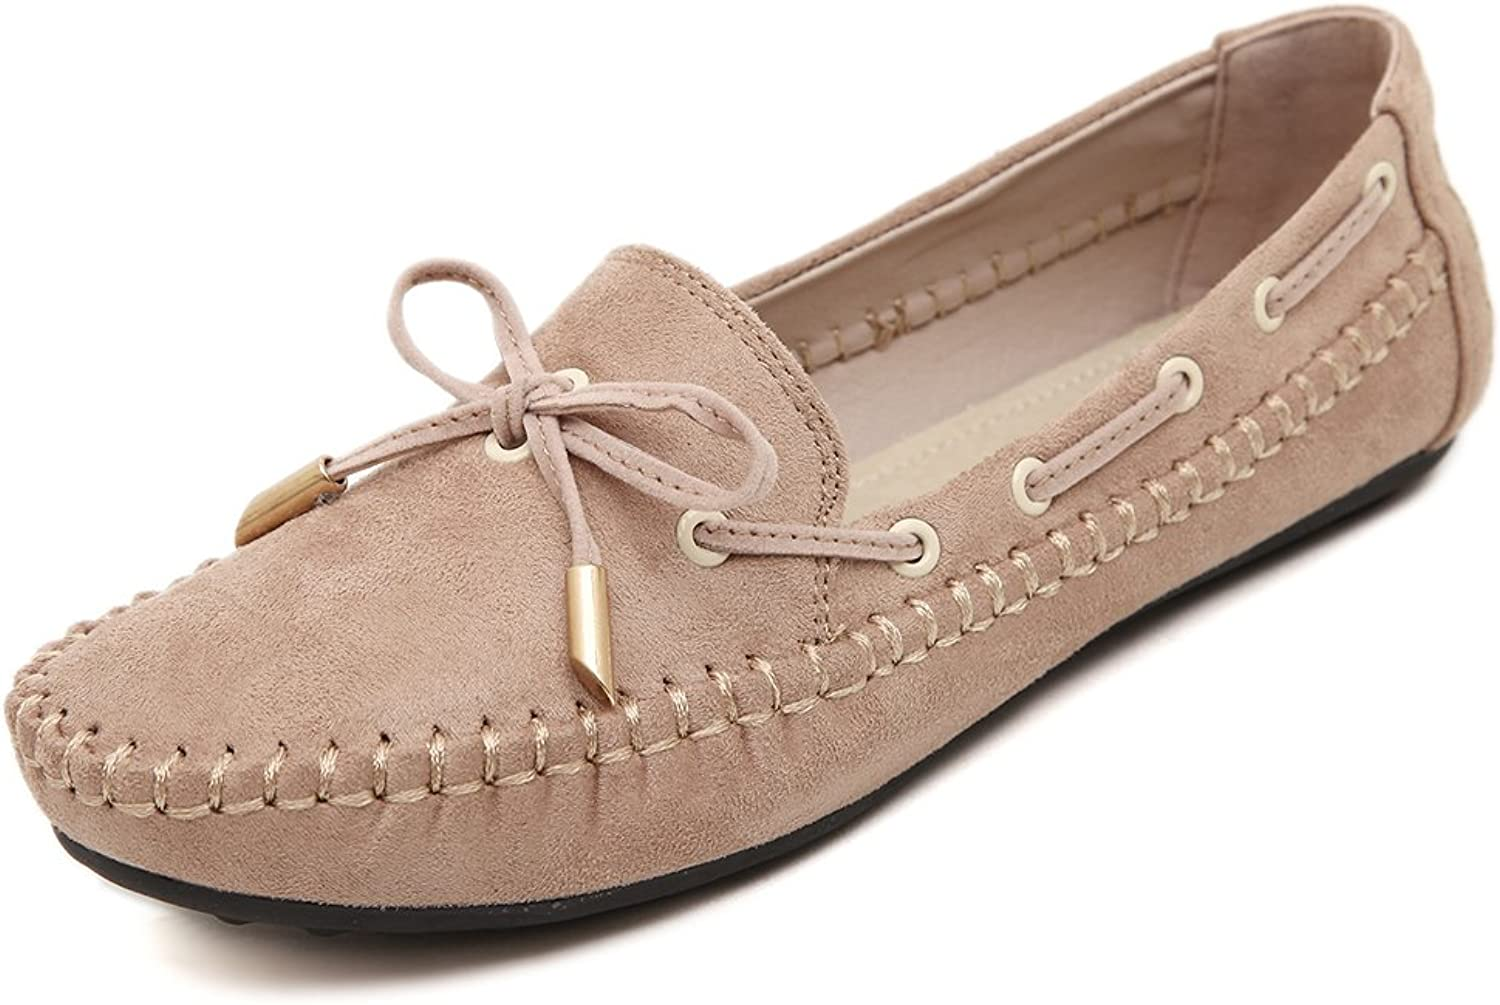 Flats with Bowknot Laces Ballet Flat shoes Slip On Loafers for Women Girls